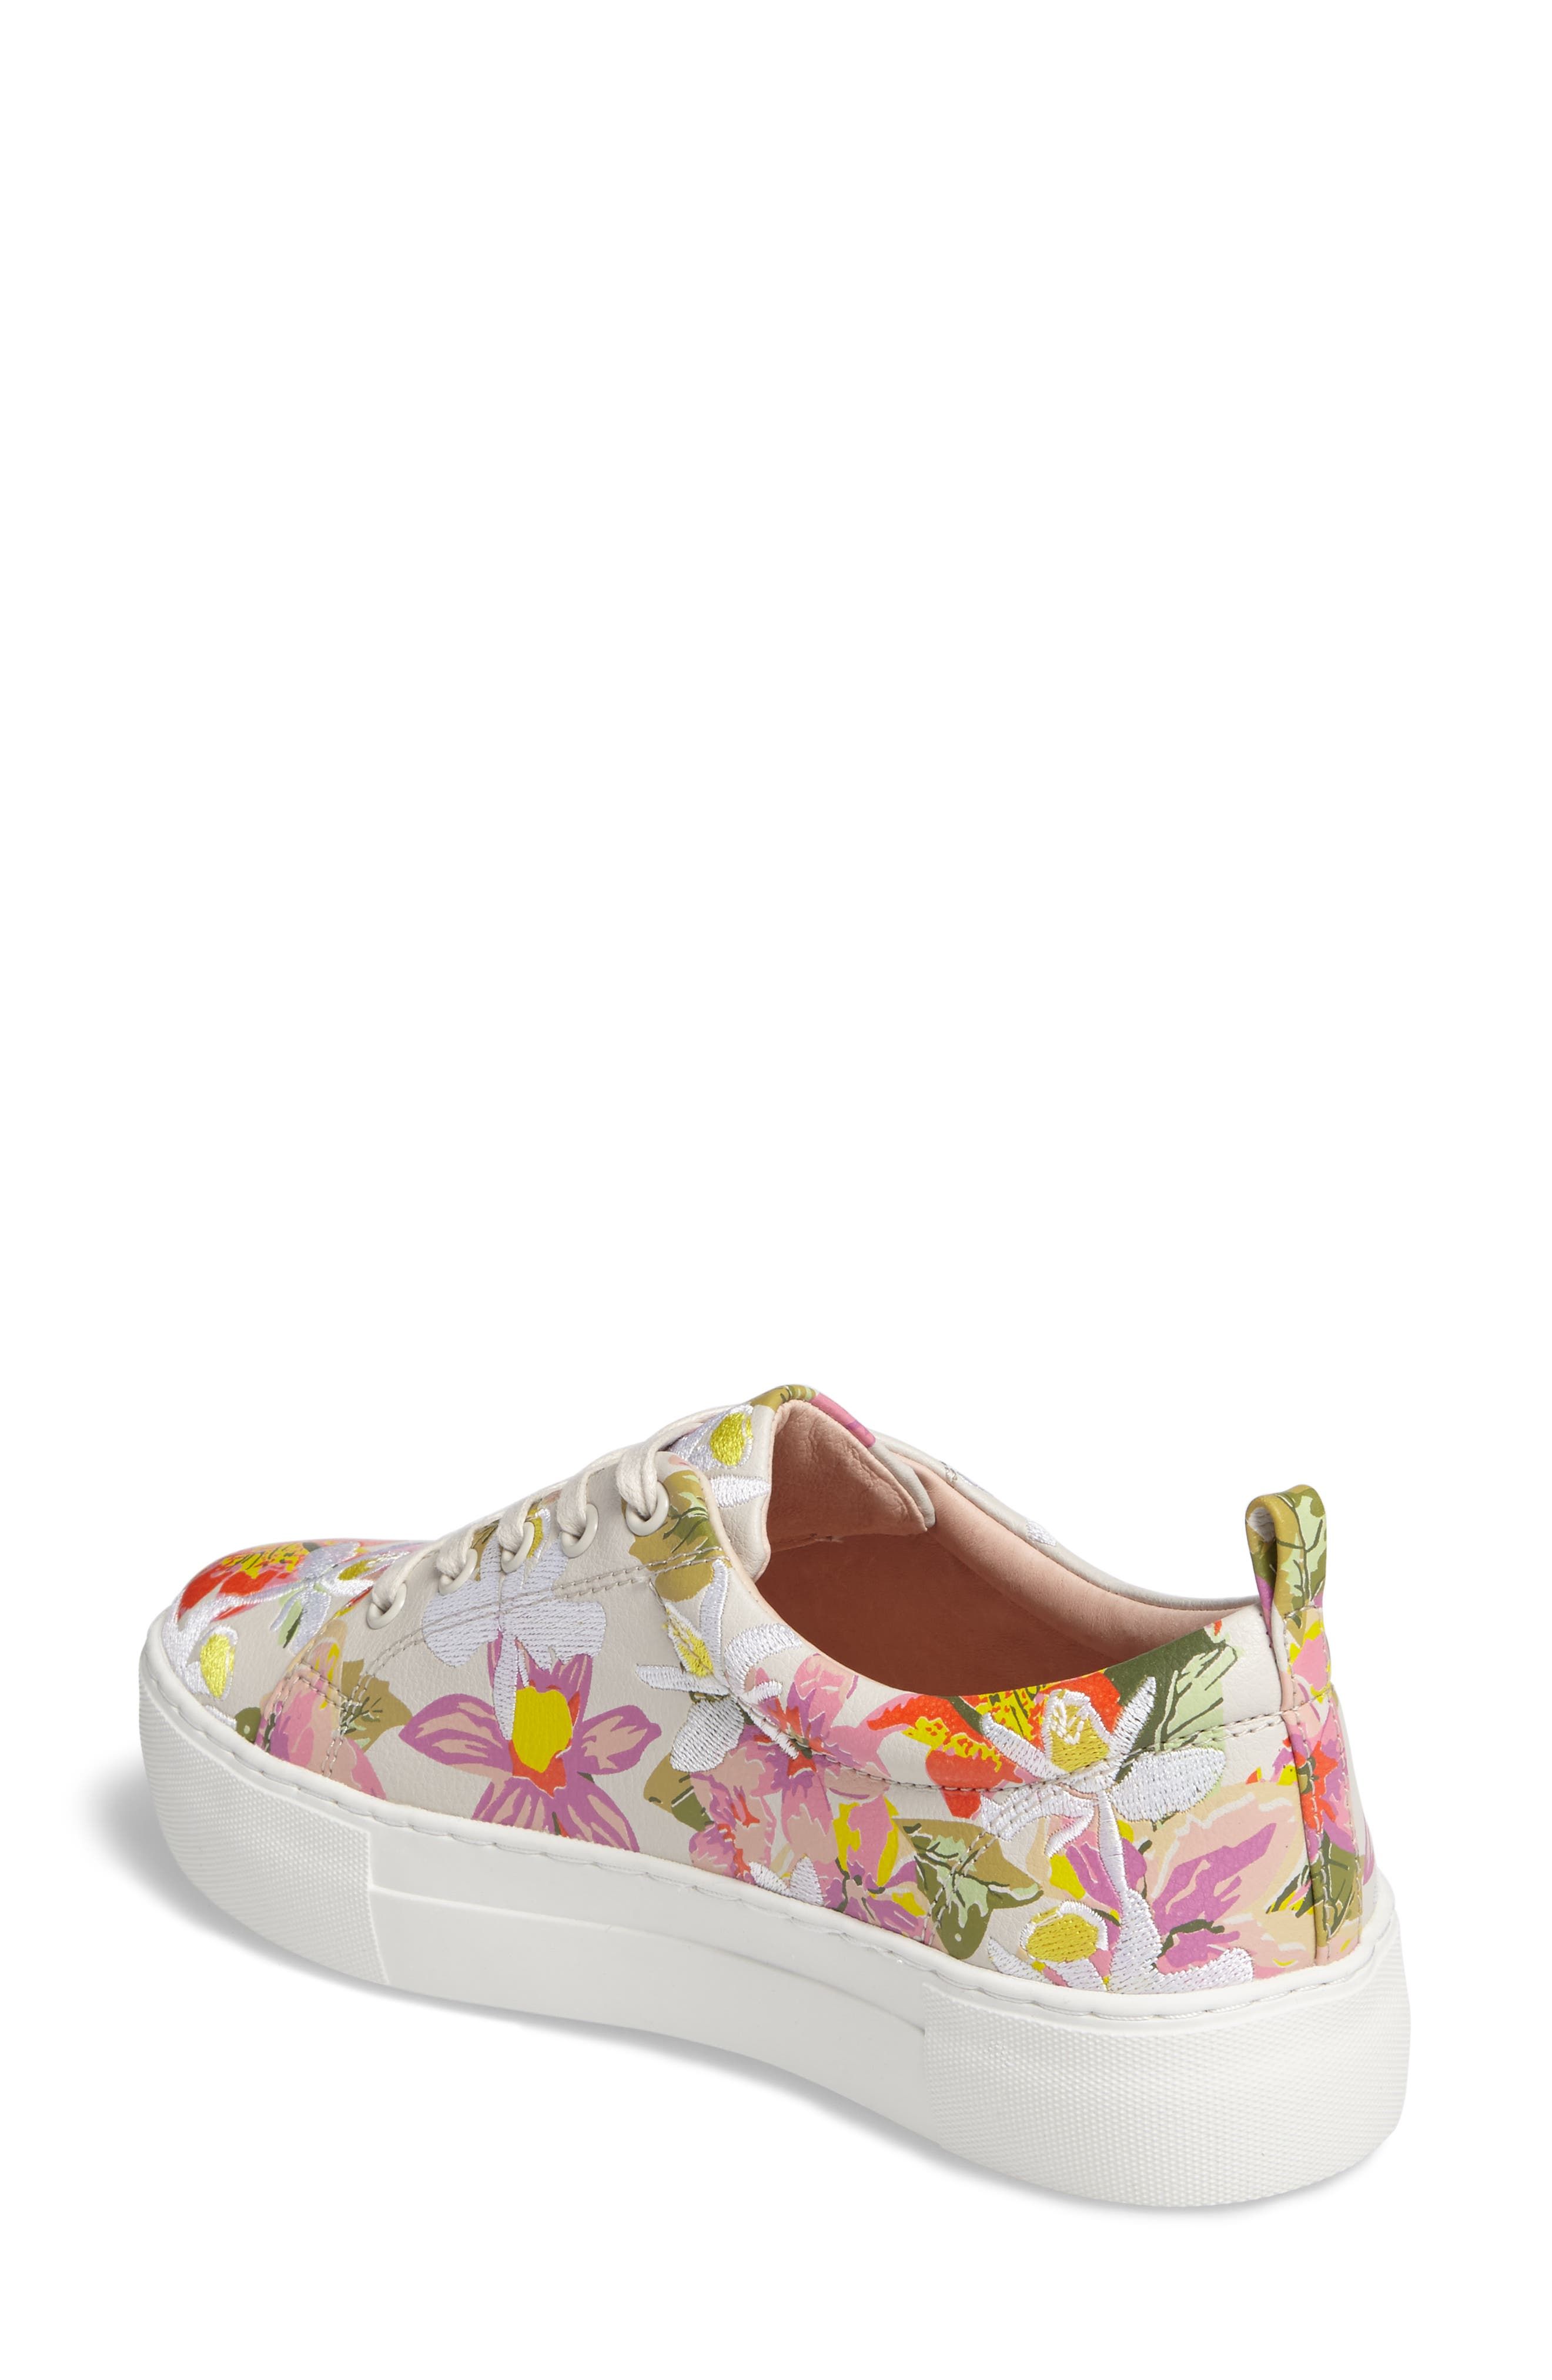 Appy Embroidered Platform Sneaker,                             Alternate thumbnail 2, color,                             Pink Multi Fabric